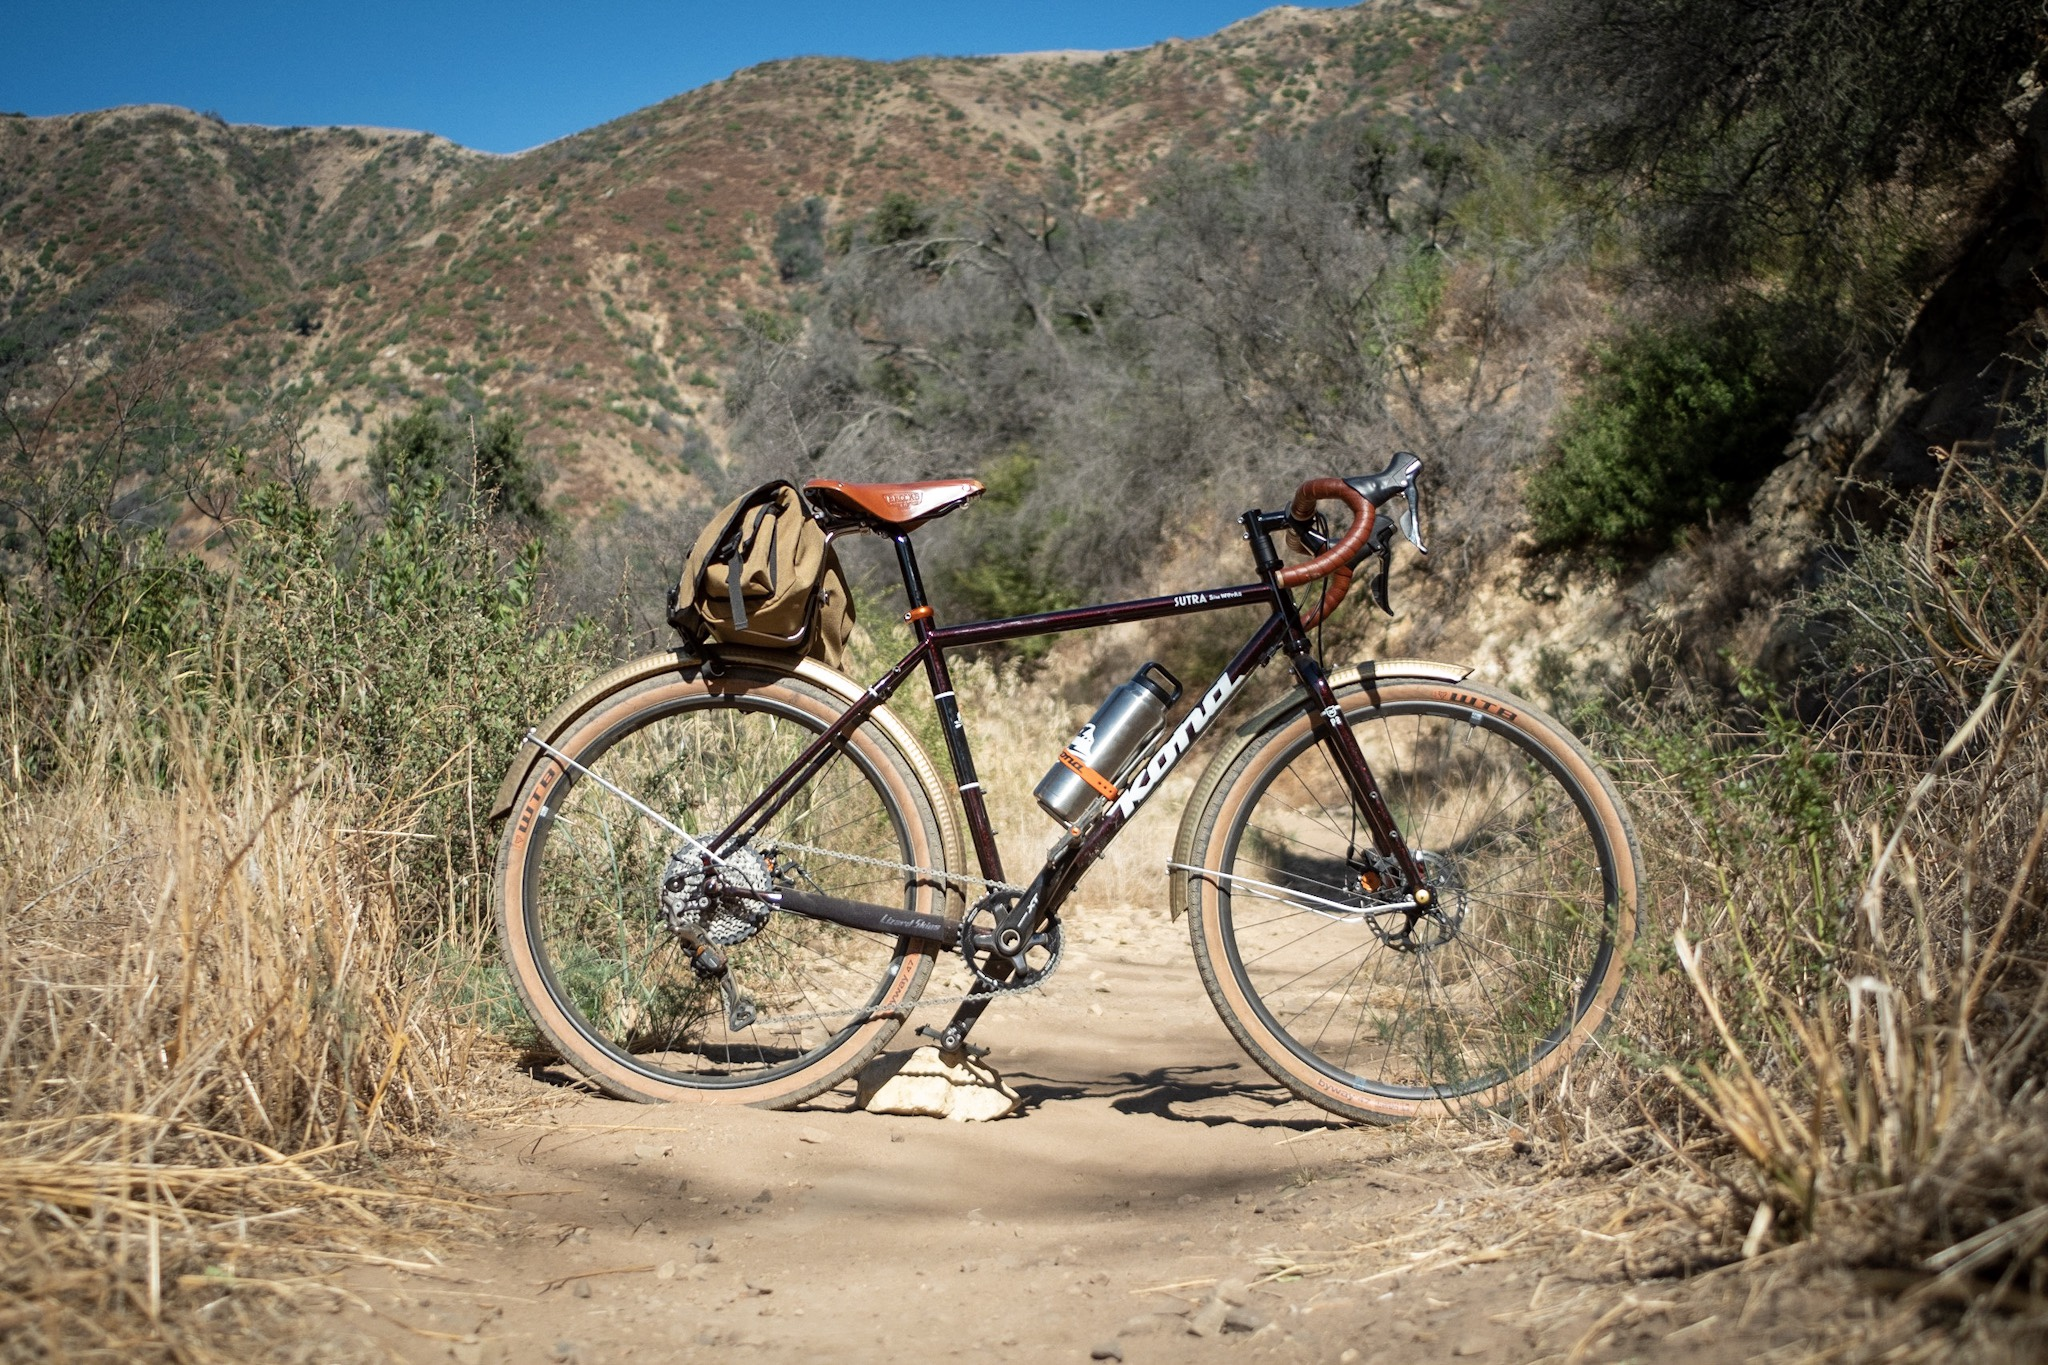 Kona Sutra 650b on Romero Canyon Trail, Santa Barbara, CA